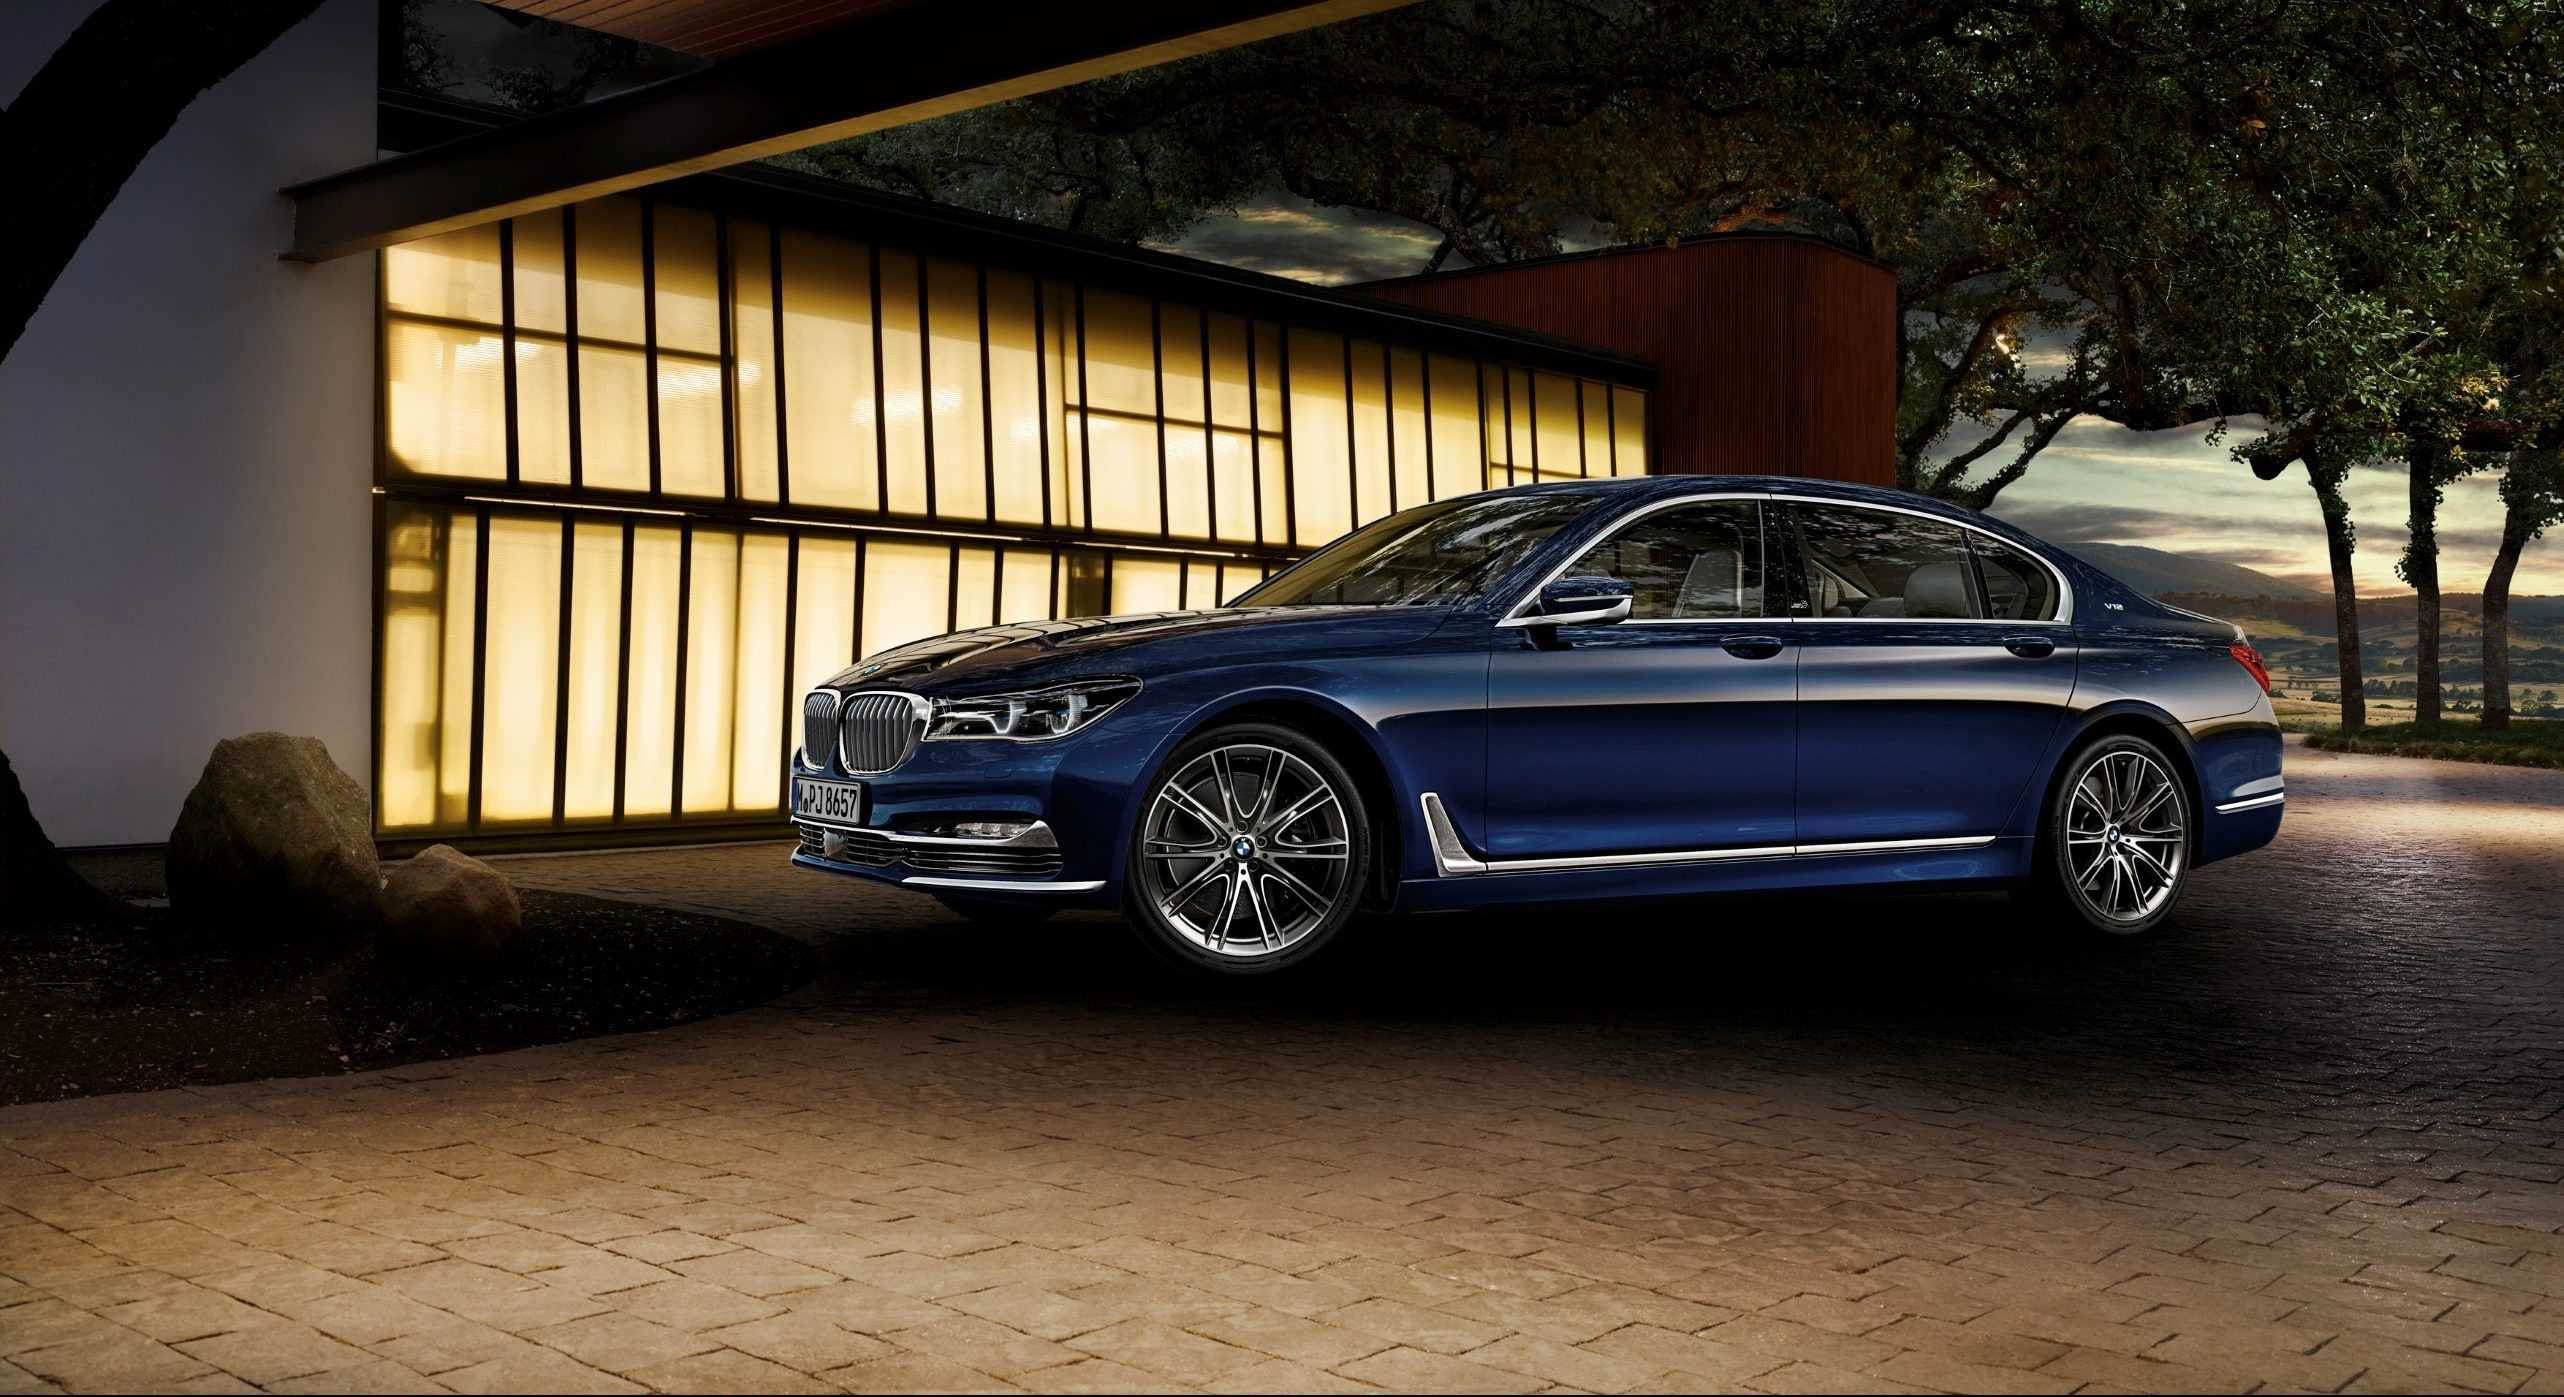 BMW 7 Serie The Next 100 Years 2016